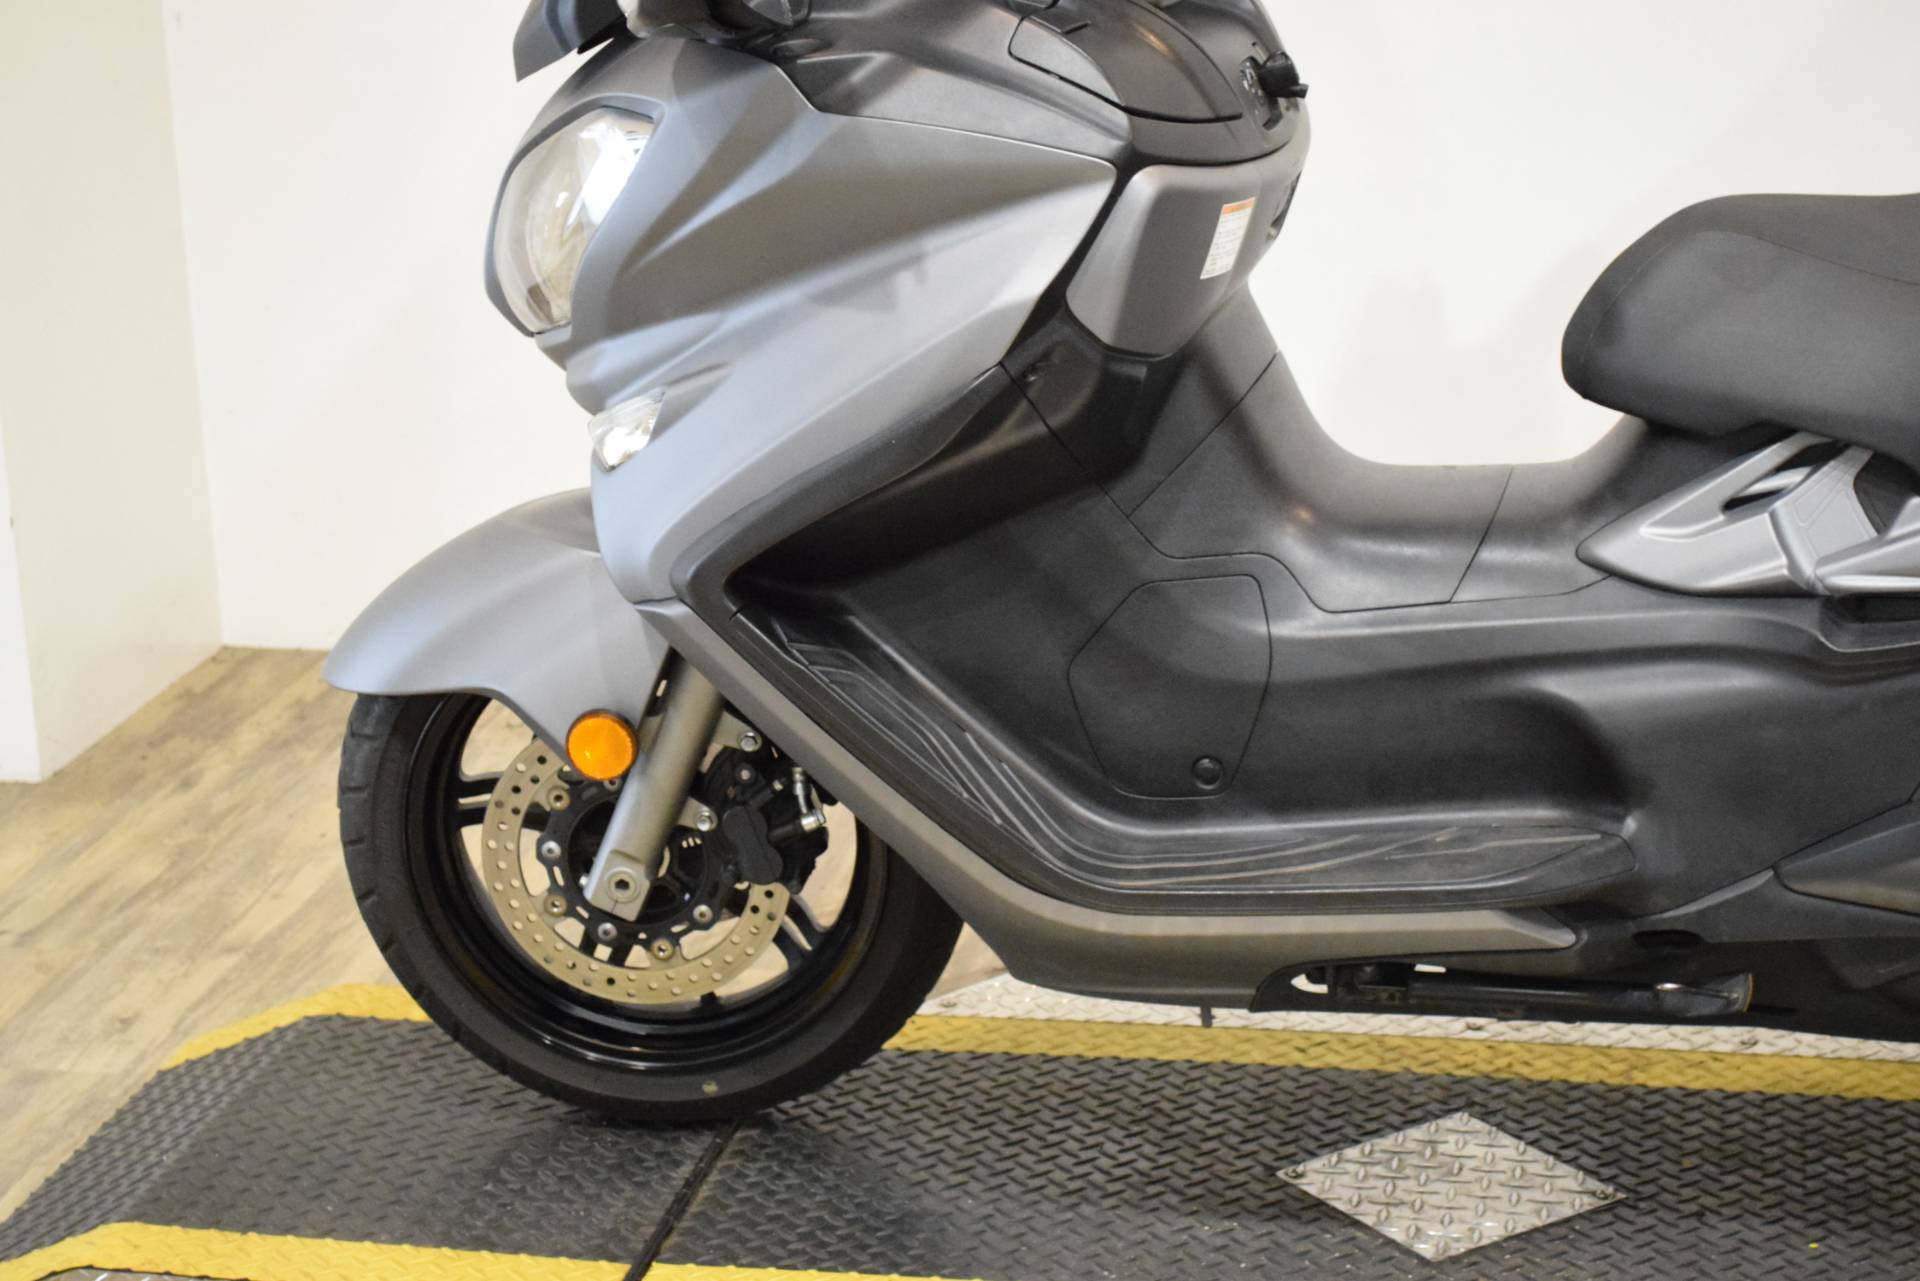 2014 Suzuki Burgman™ 650 ABS in Wauconda, Illinois - Photo 17